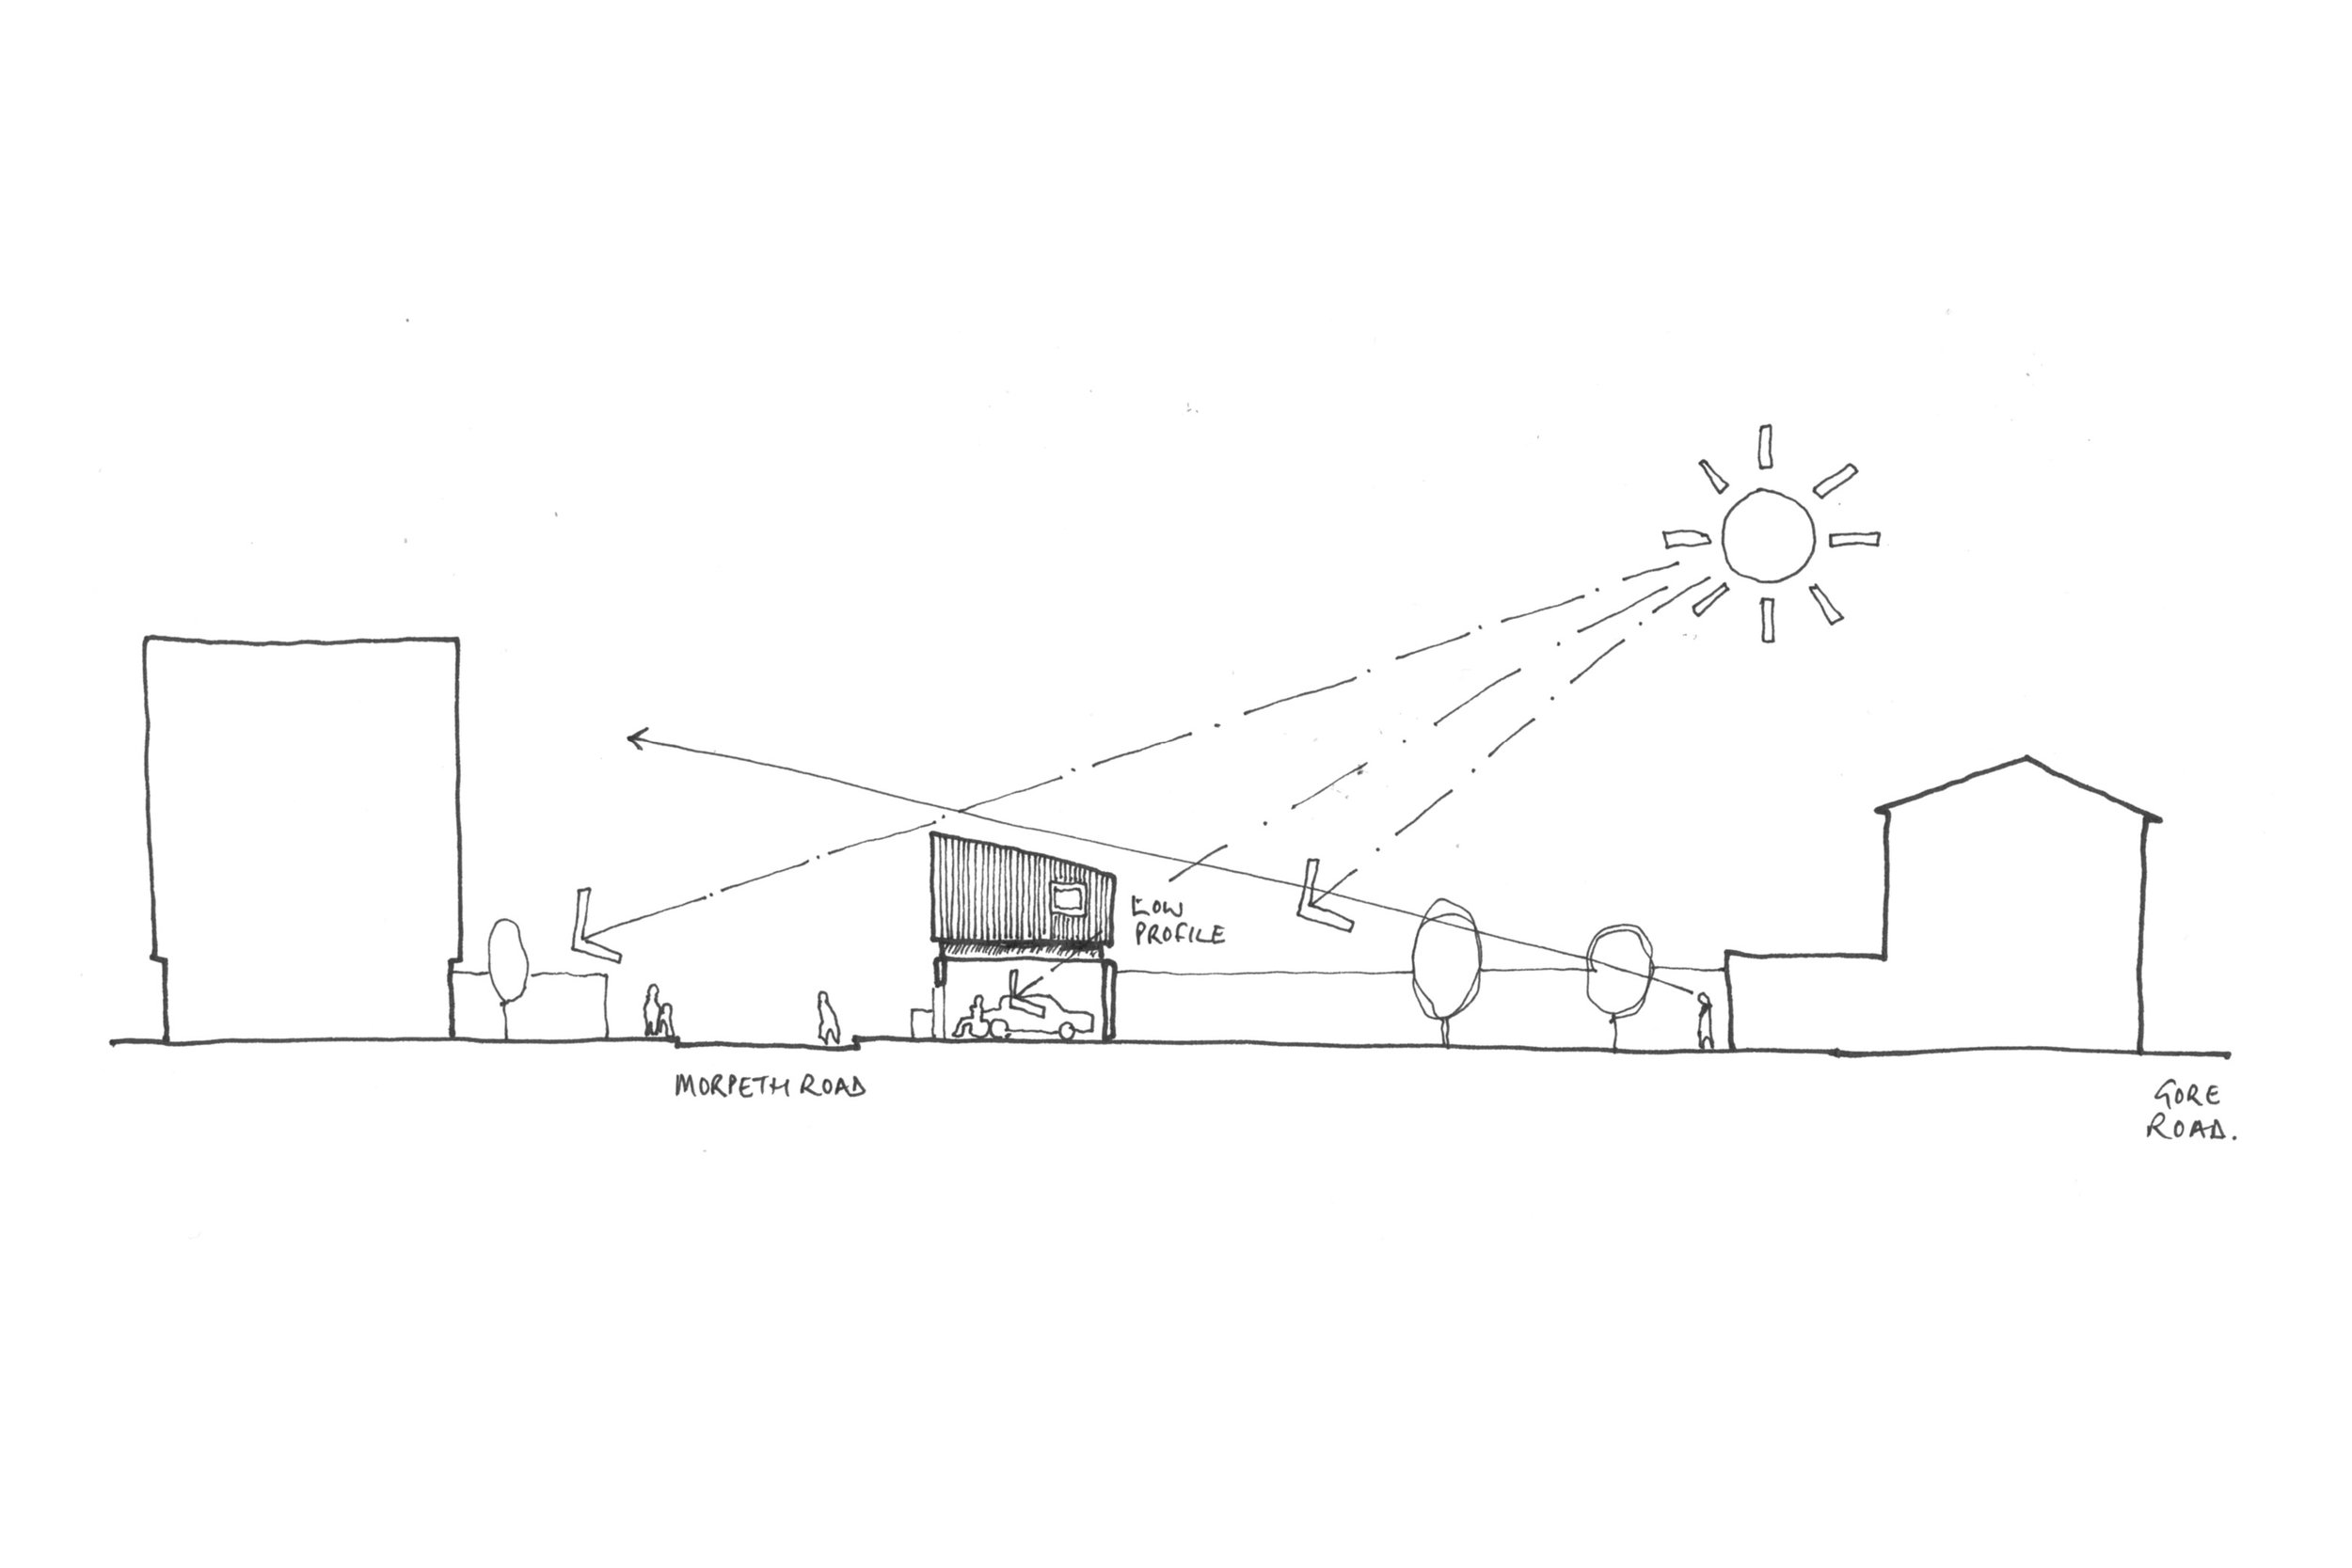 Design with Sun Orientation at Social Housing Development in Hackney